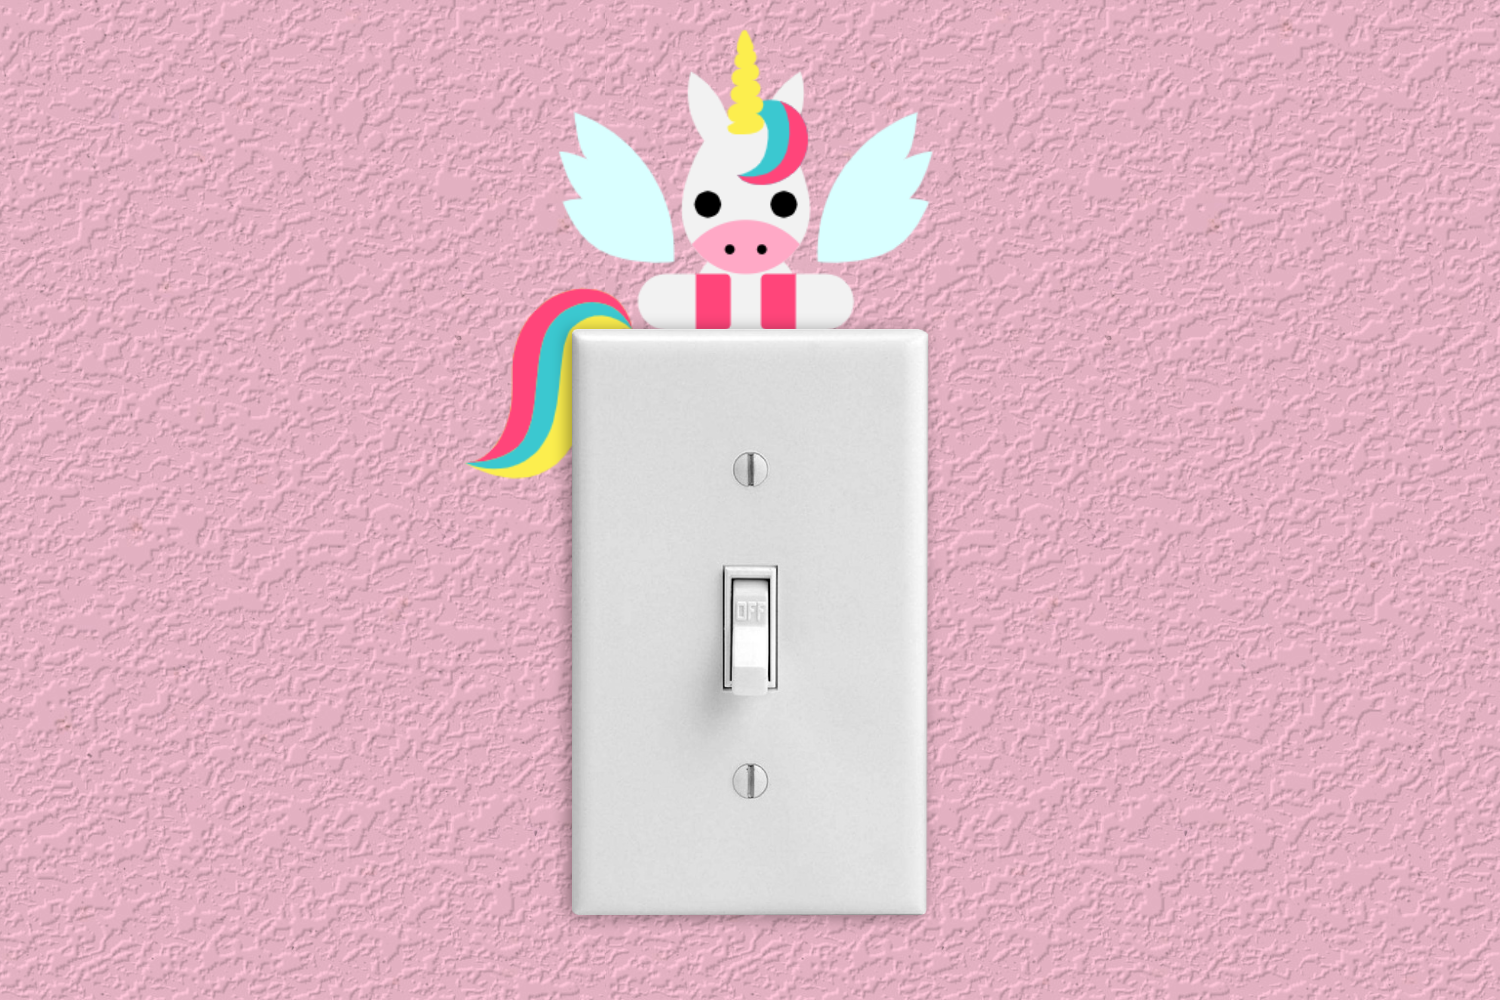 Pocket Or Outlet Unicorn Svg Png Dxf By Risa Rocks It